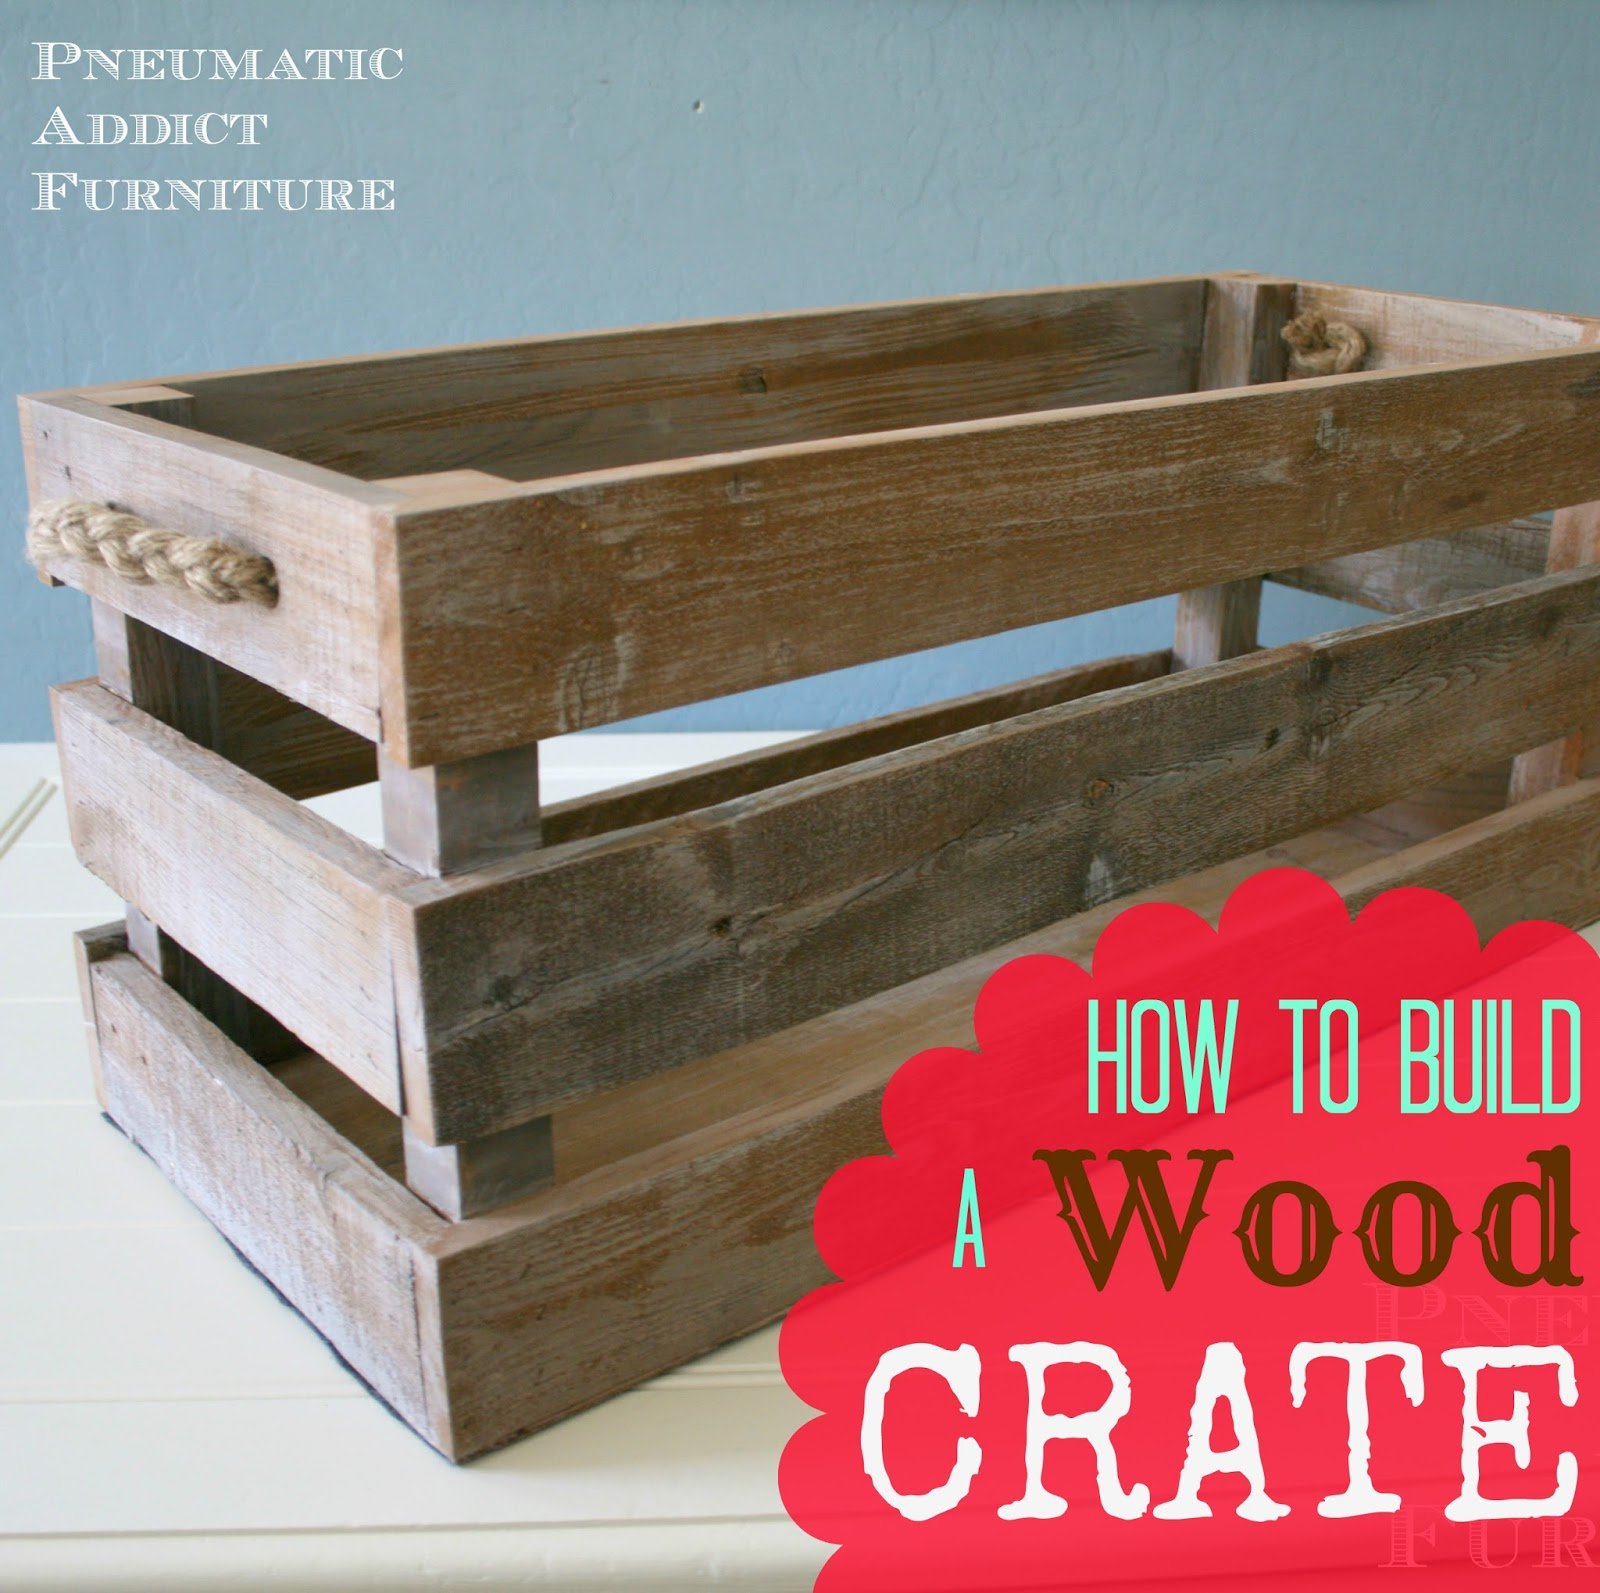 Build Your Own Coffee Table With Storage: How To Build A Wood Crate